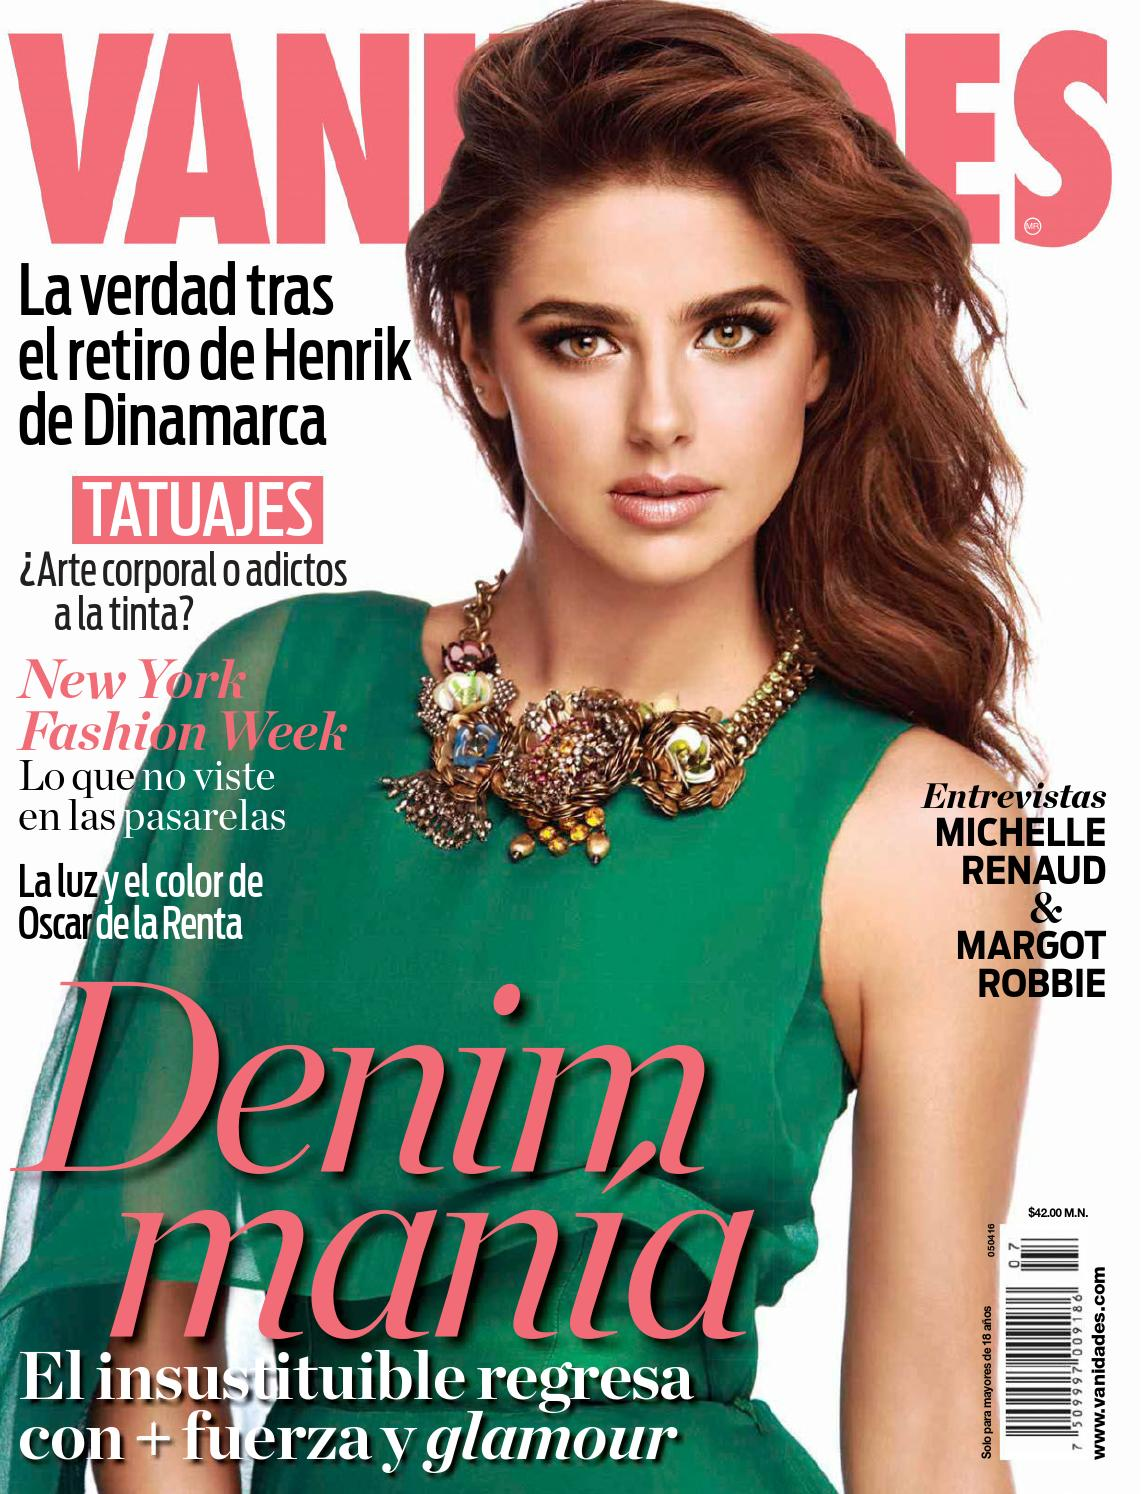 Vanidades may do duong huyet mexico 23 marzo 2016 by Cong ty TNHH ...